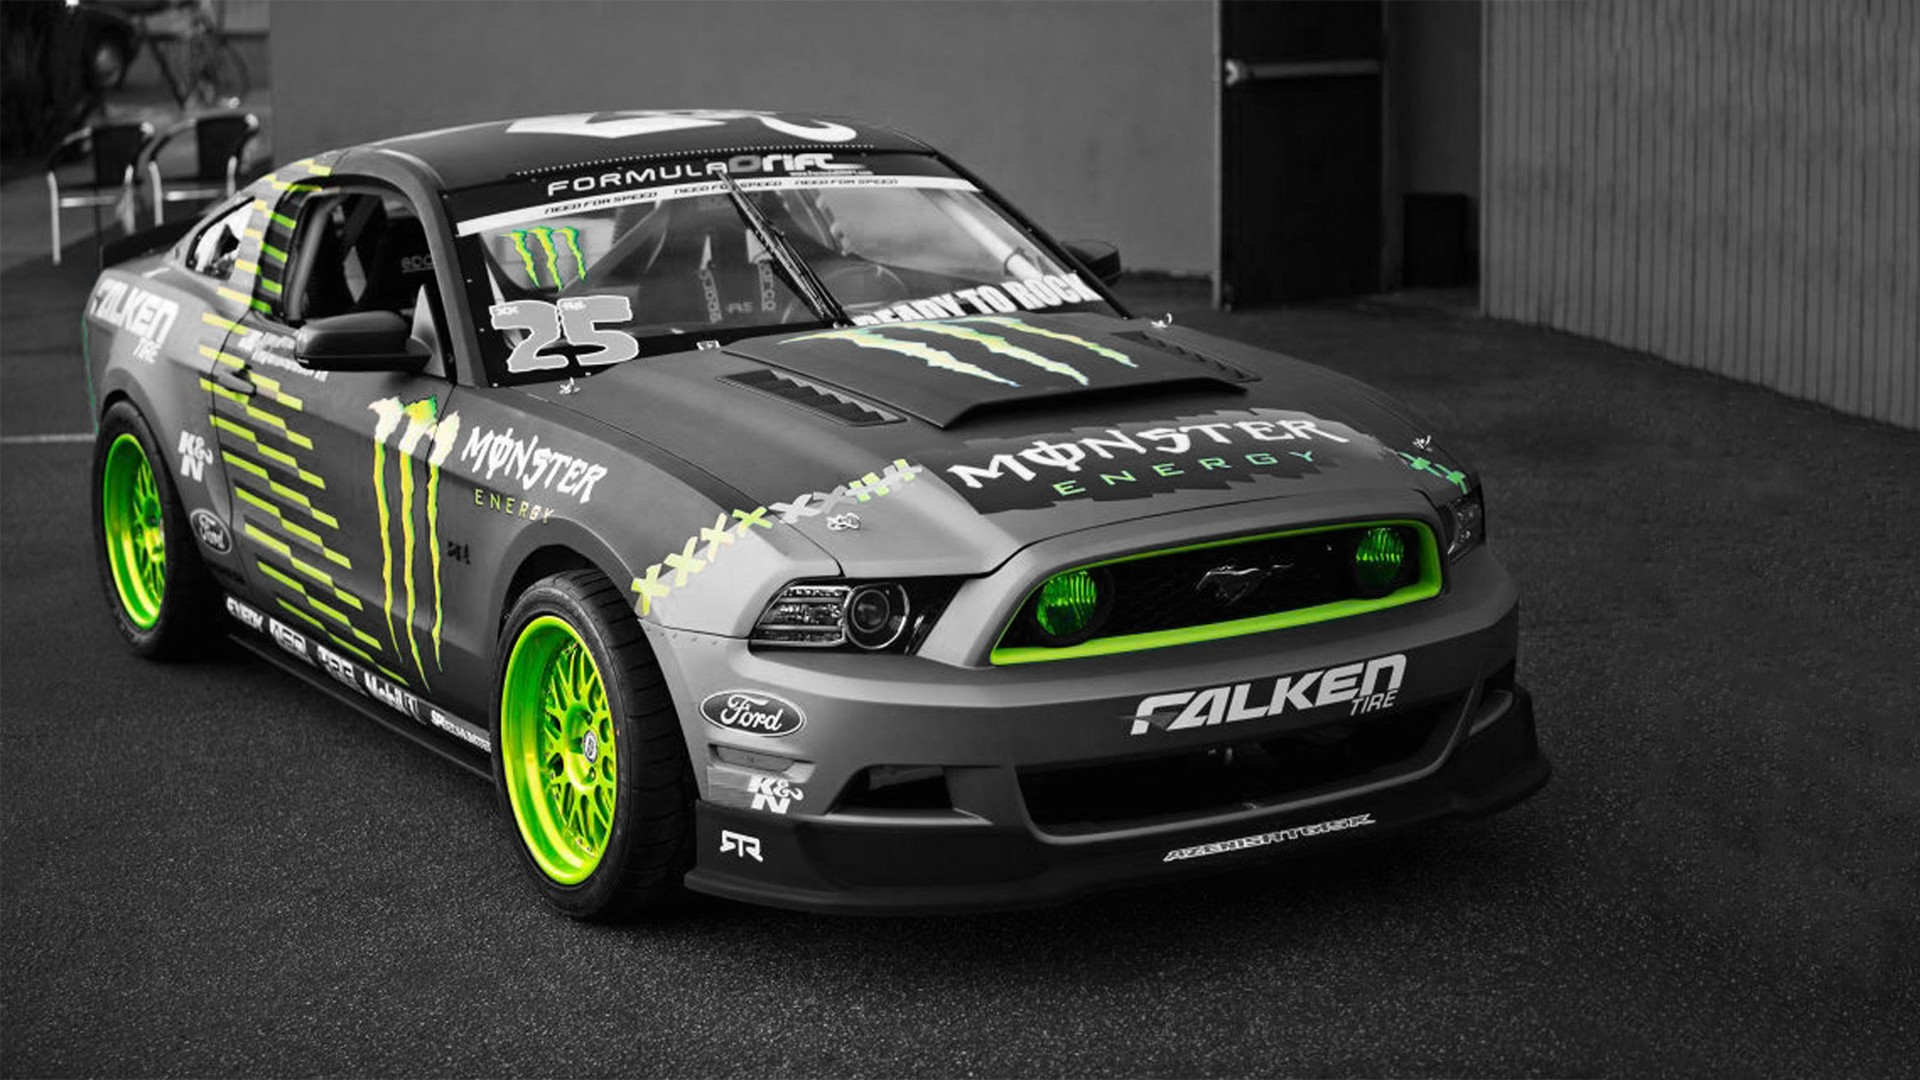 Green Cars Ford Mustang Selective Coloring Monster Energy Sports Wallpaper  1920x1080